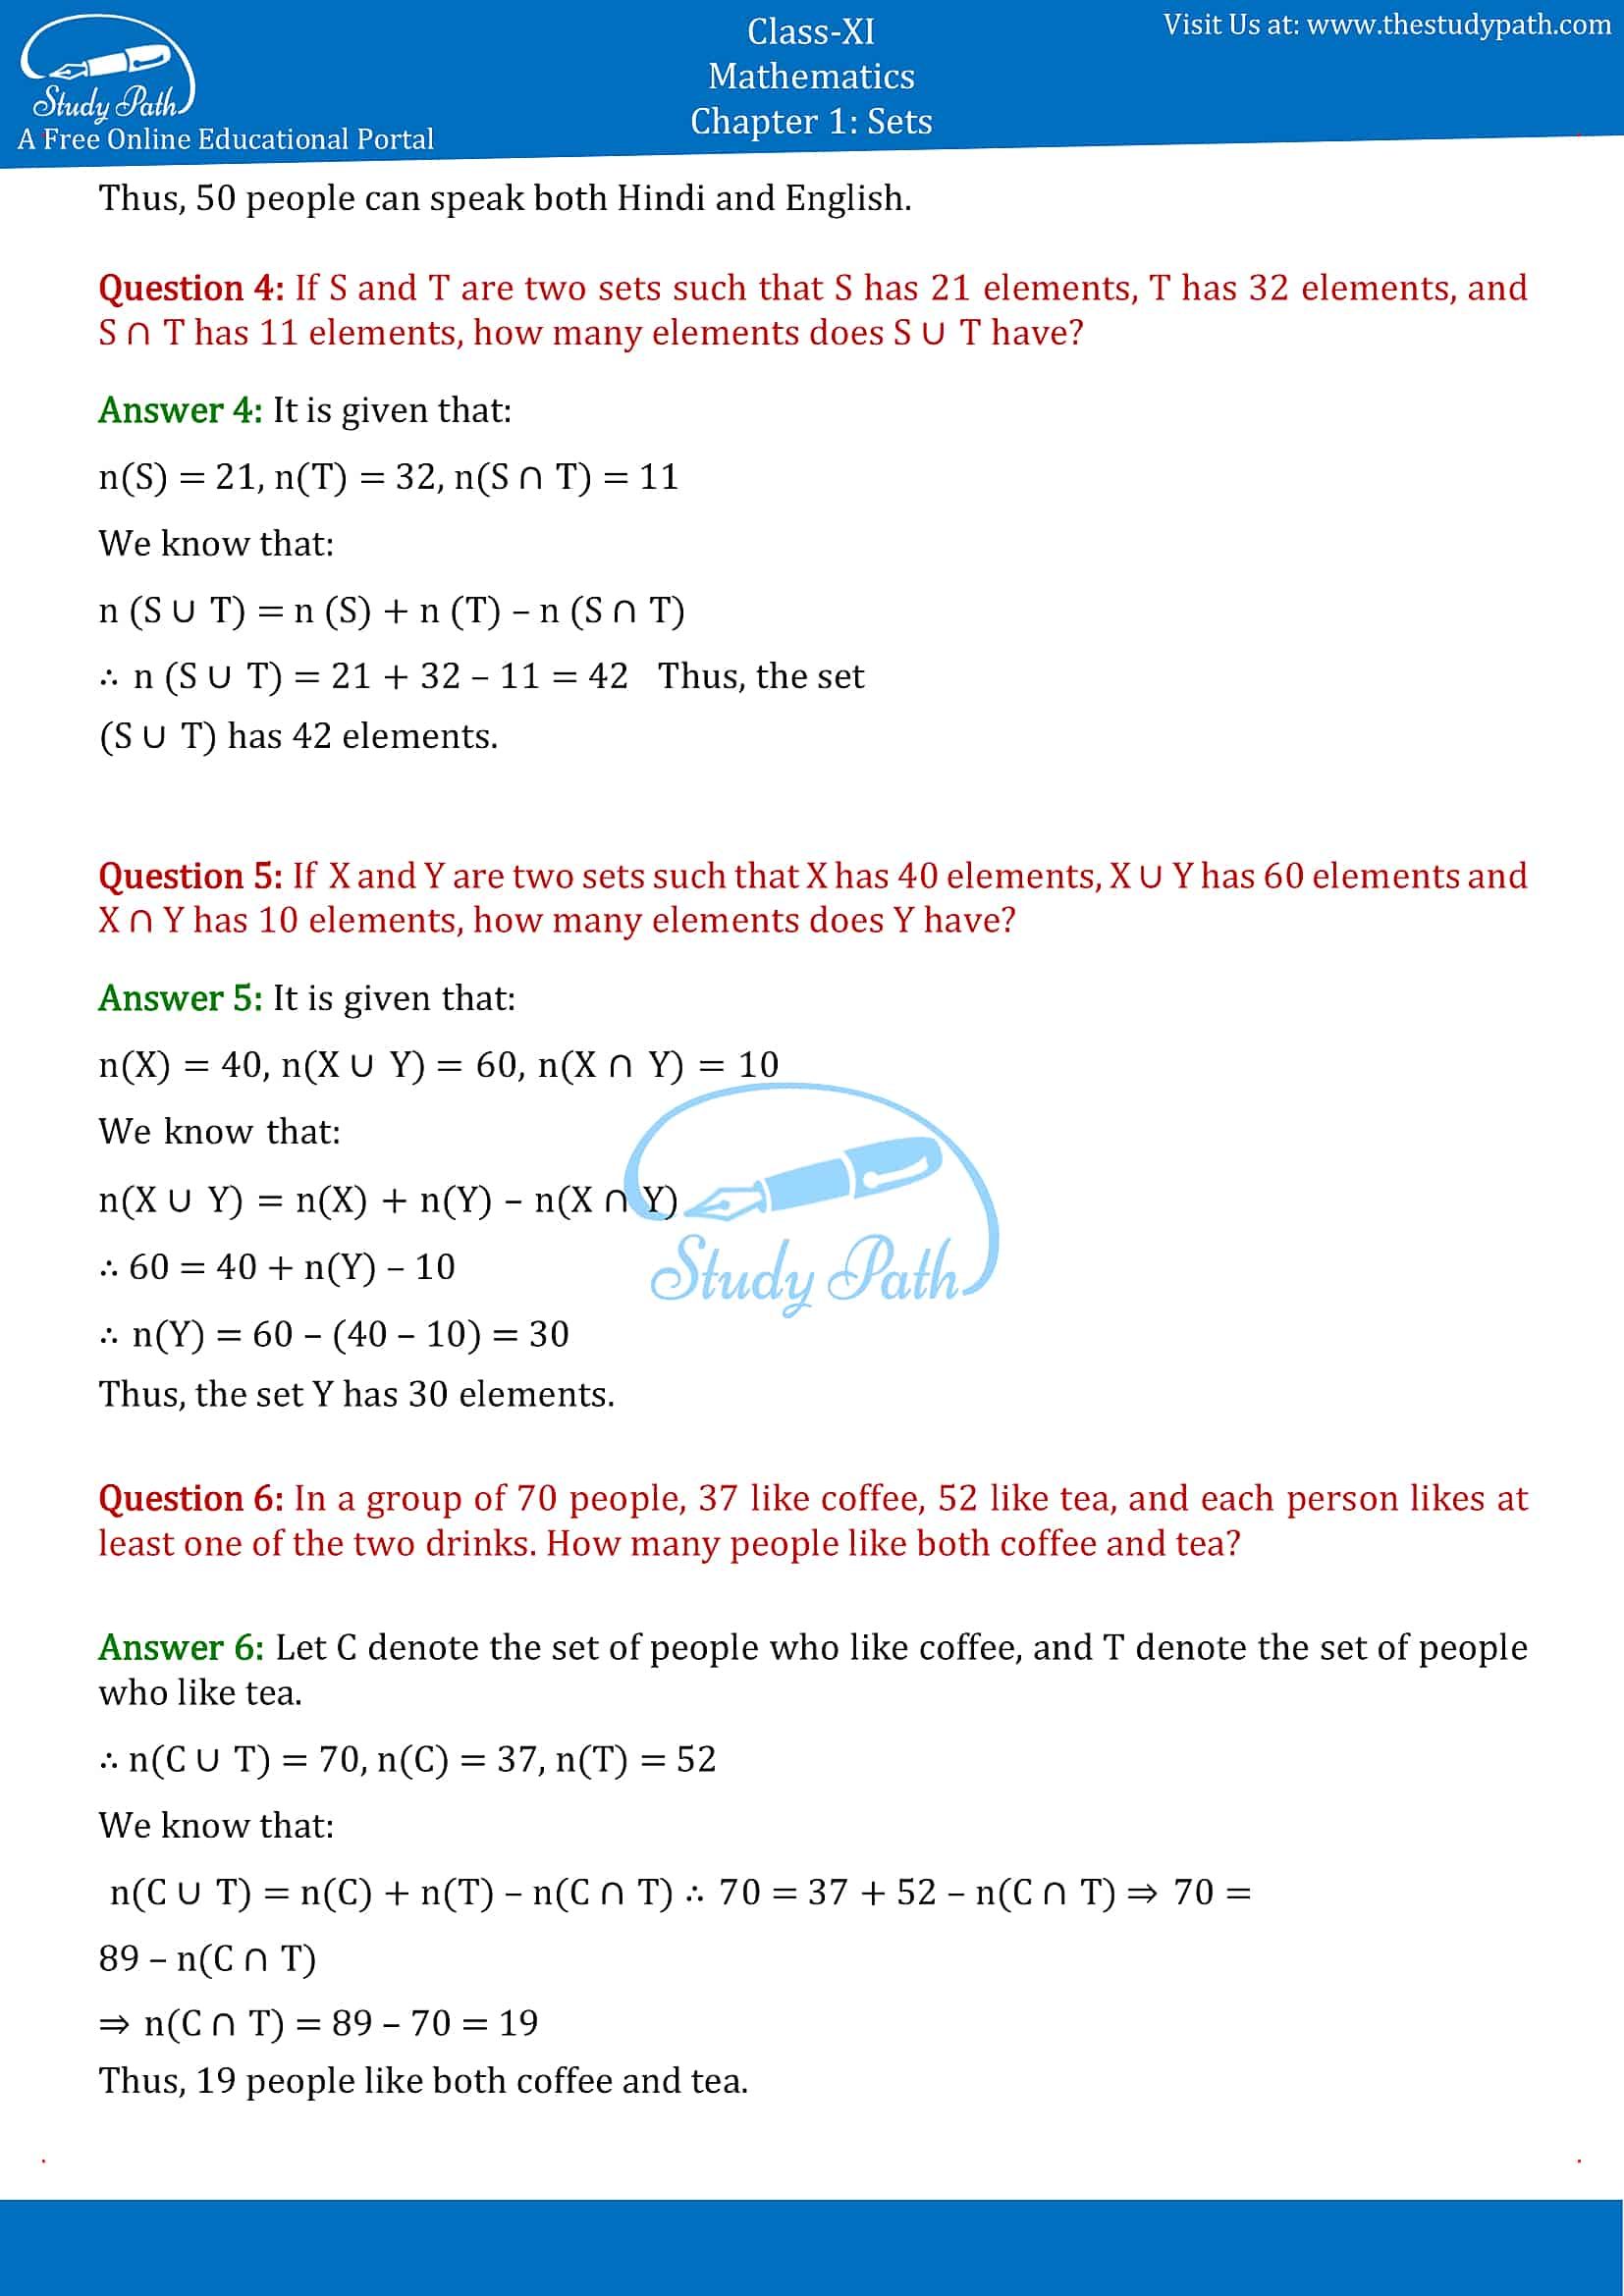 NCERT Solutions for Class 11 Maths chapter 1 sets Exercise 1.6